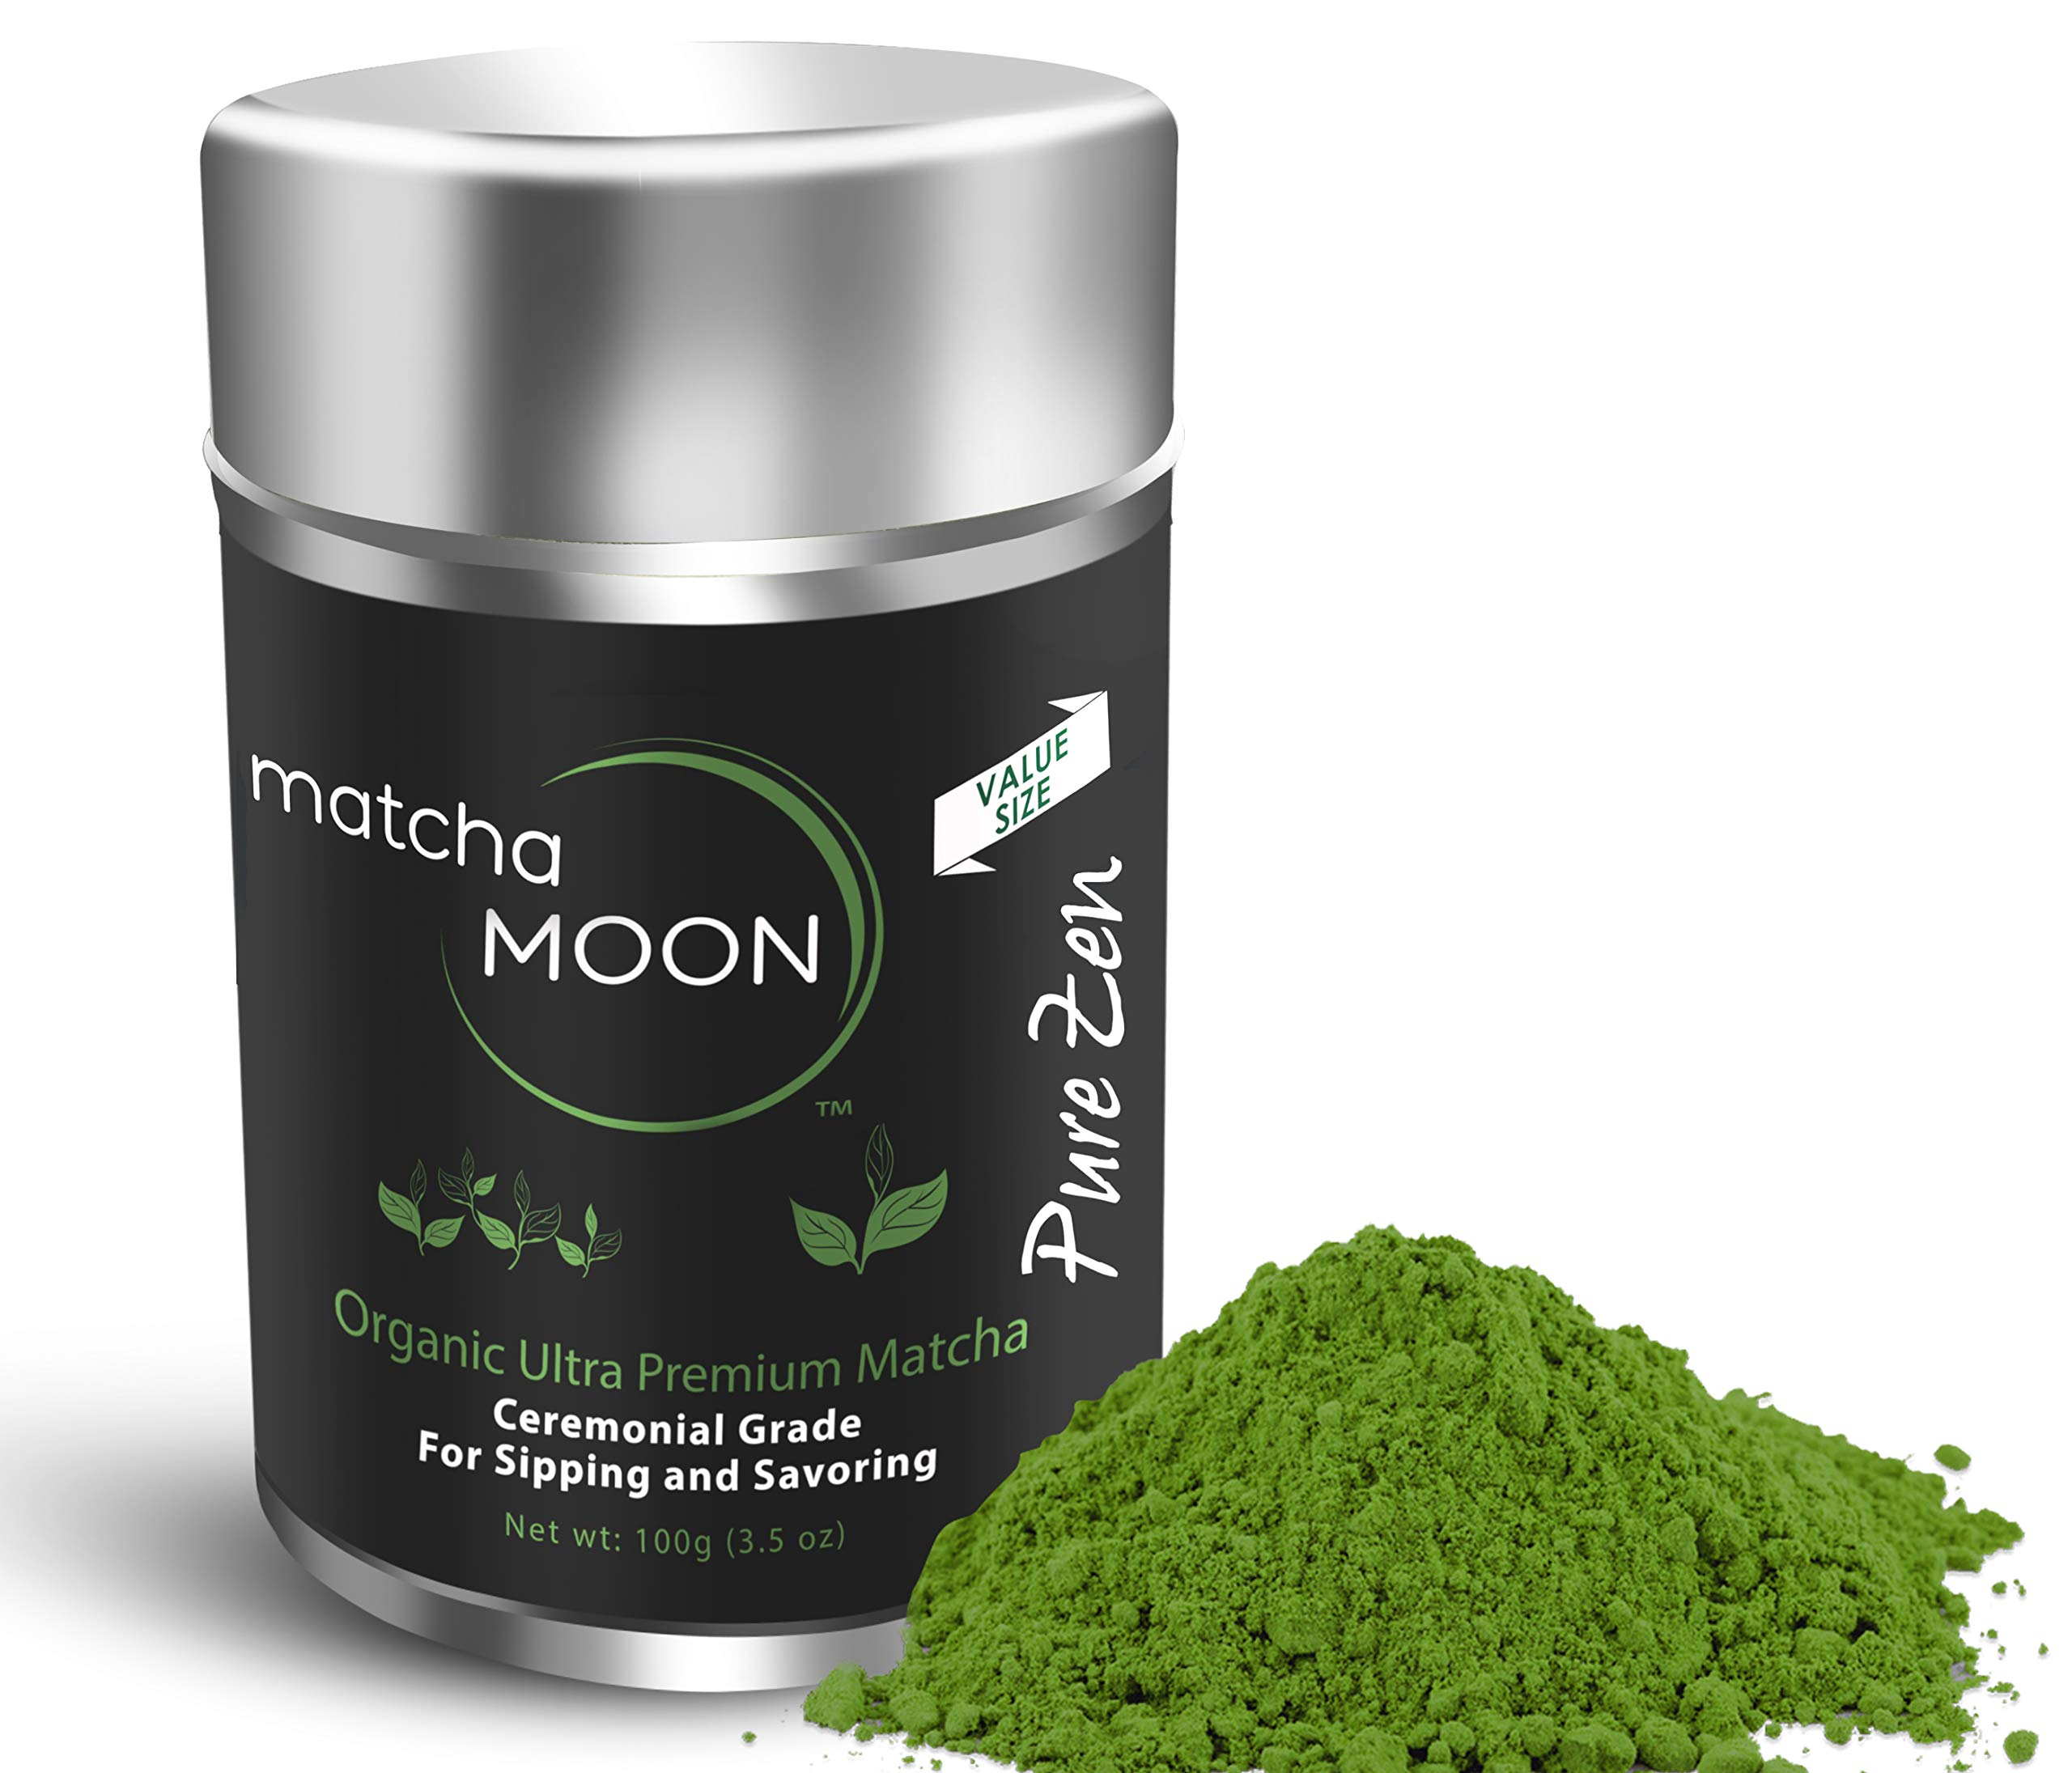 Matcha Moon - Organic Ceremonial Grade Japanese Matcha Green Tea Powder from Uji Kyoto Japan - Authentic, Premium, USDA Certified - Best For Traditionally Whisked Tea - Pure Zen - Value Size 100g Tin by Matcha Moon (Image #9)